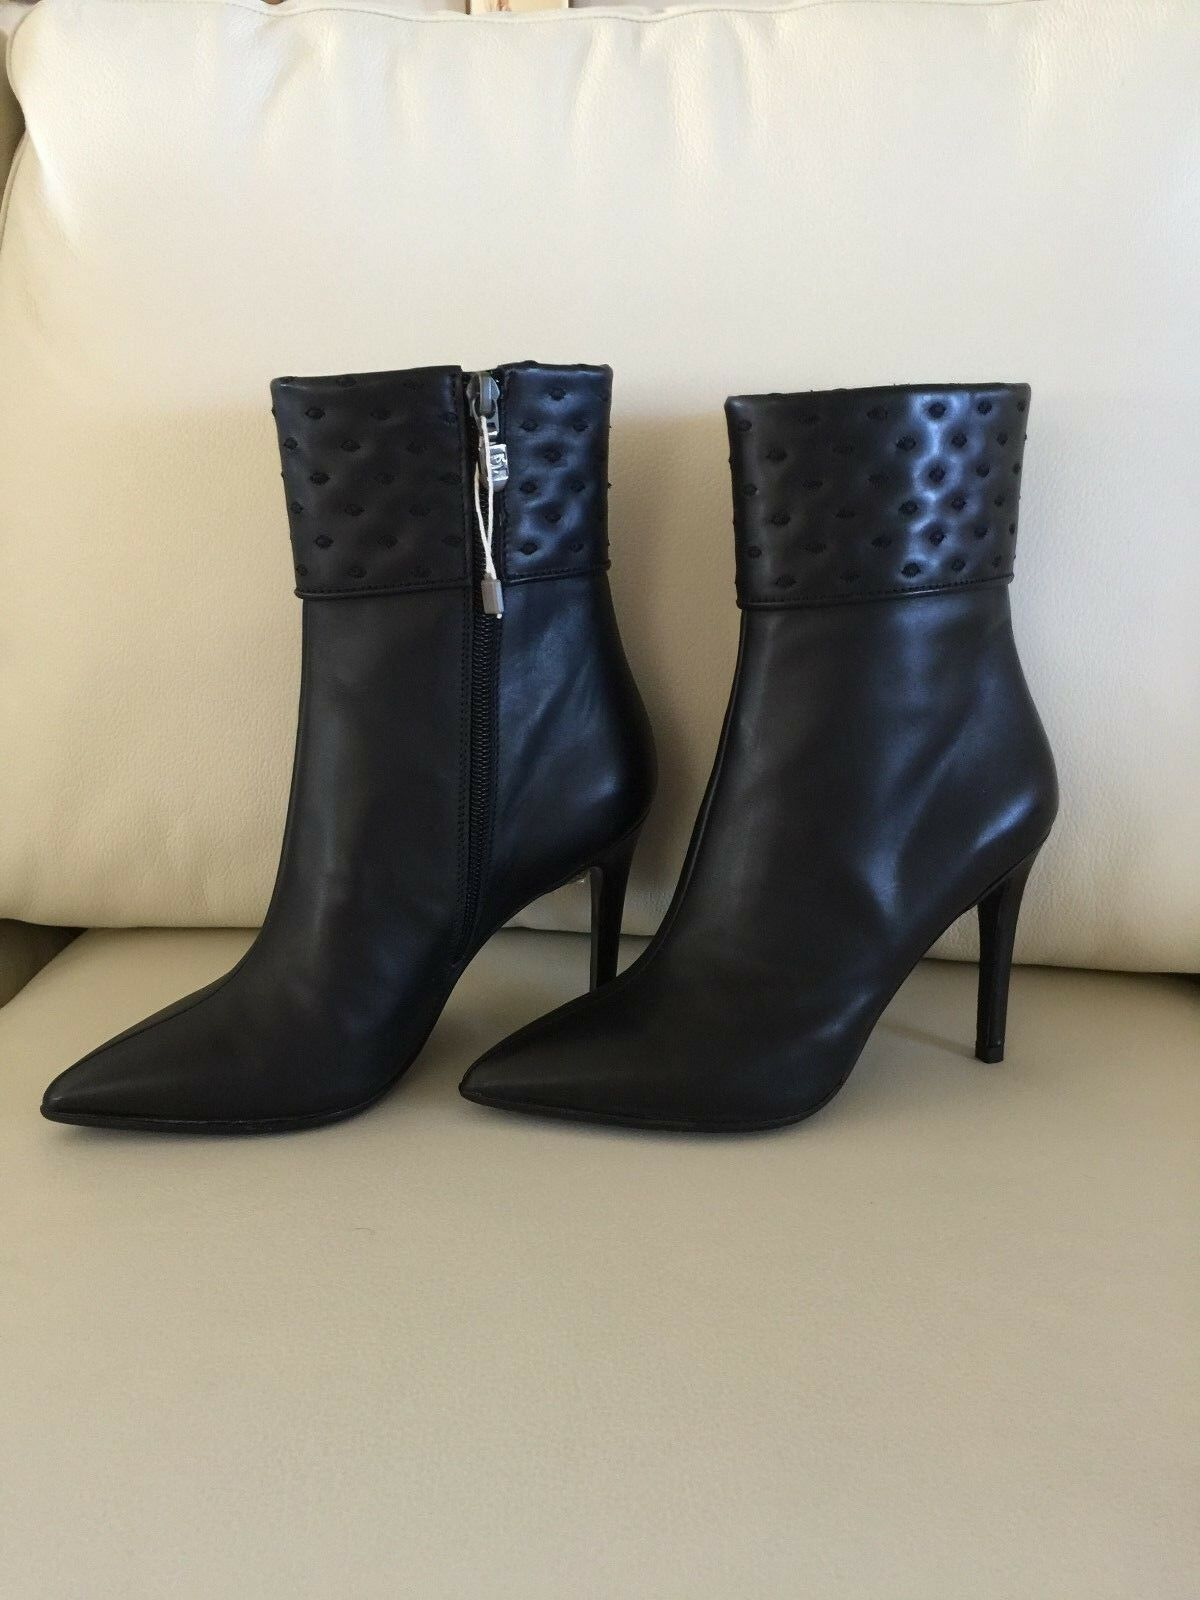 Fiorangelo Women's Ankle Boots  size 35  US 5